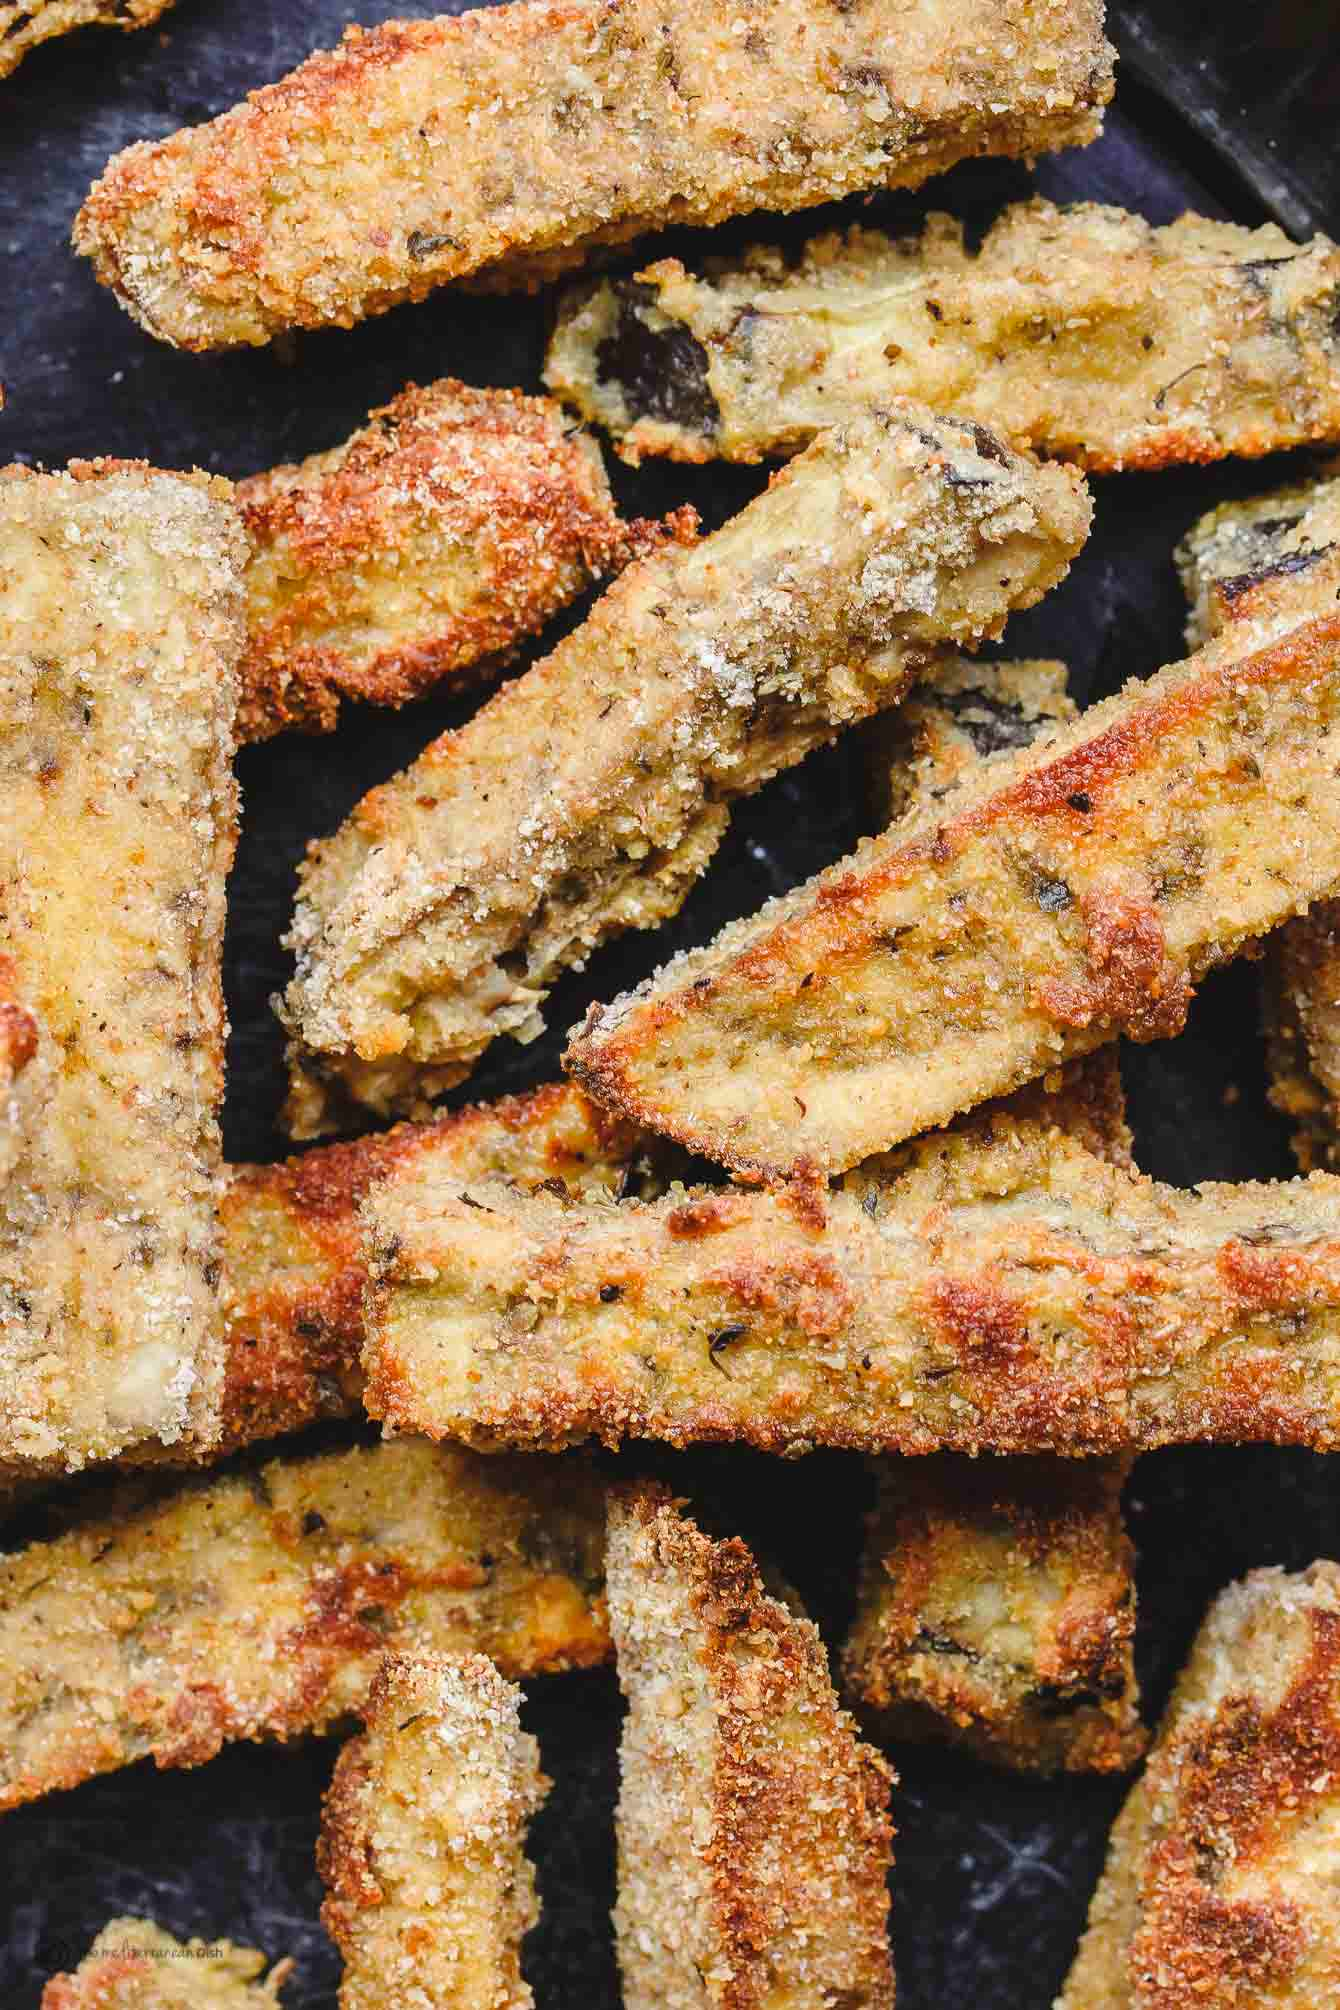 Ready to eat eggplant fries, crispy on the outside and tender on the inside